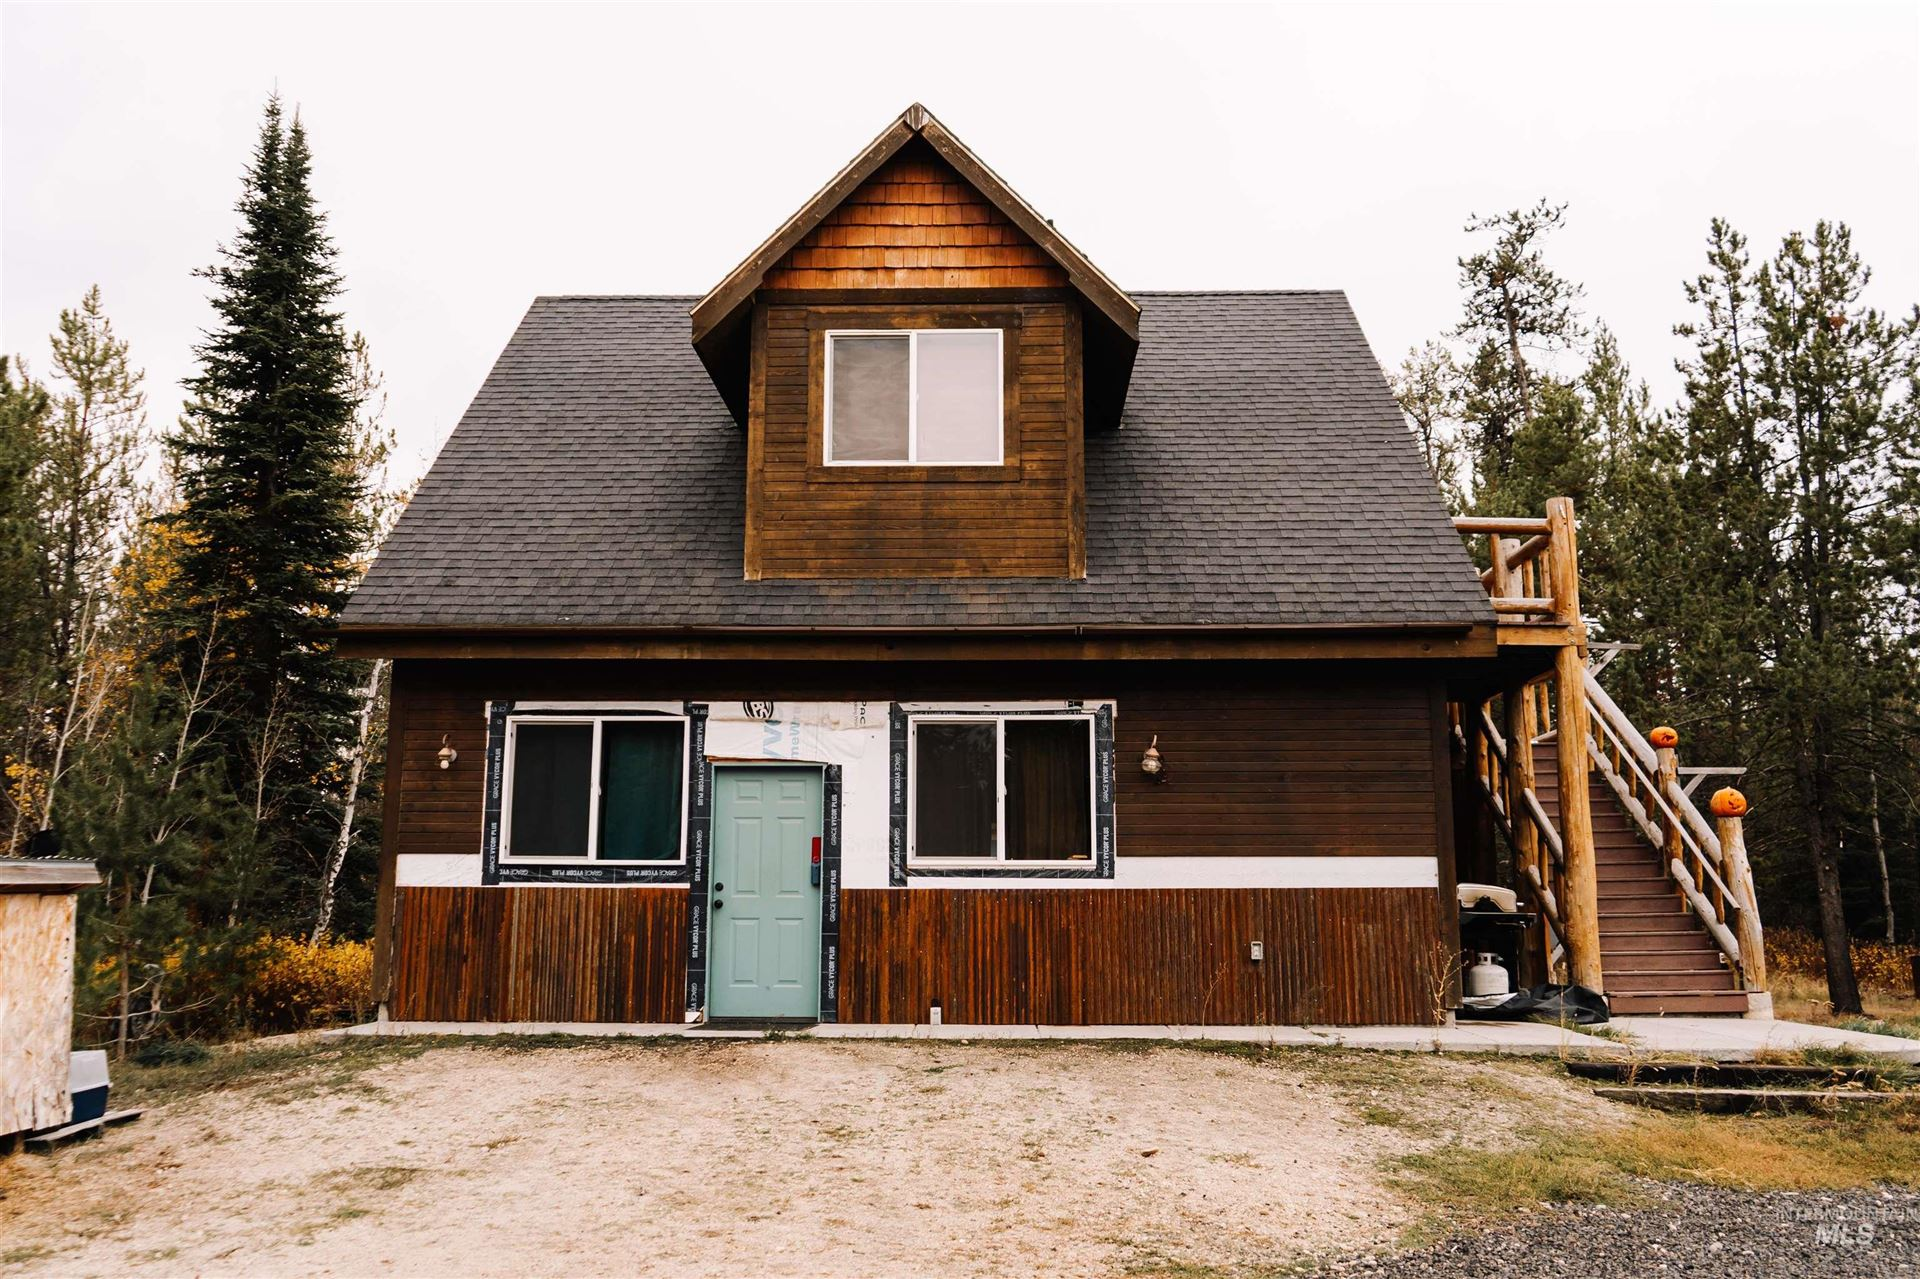 185 Lodgepole Ln, Donnelly, ID 83615 - MLS#: 98812114